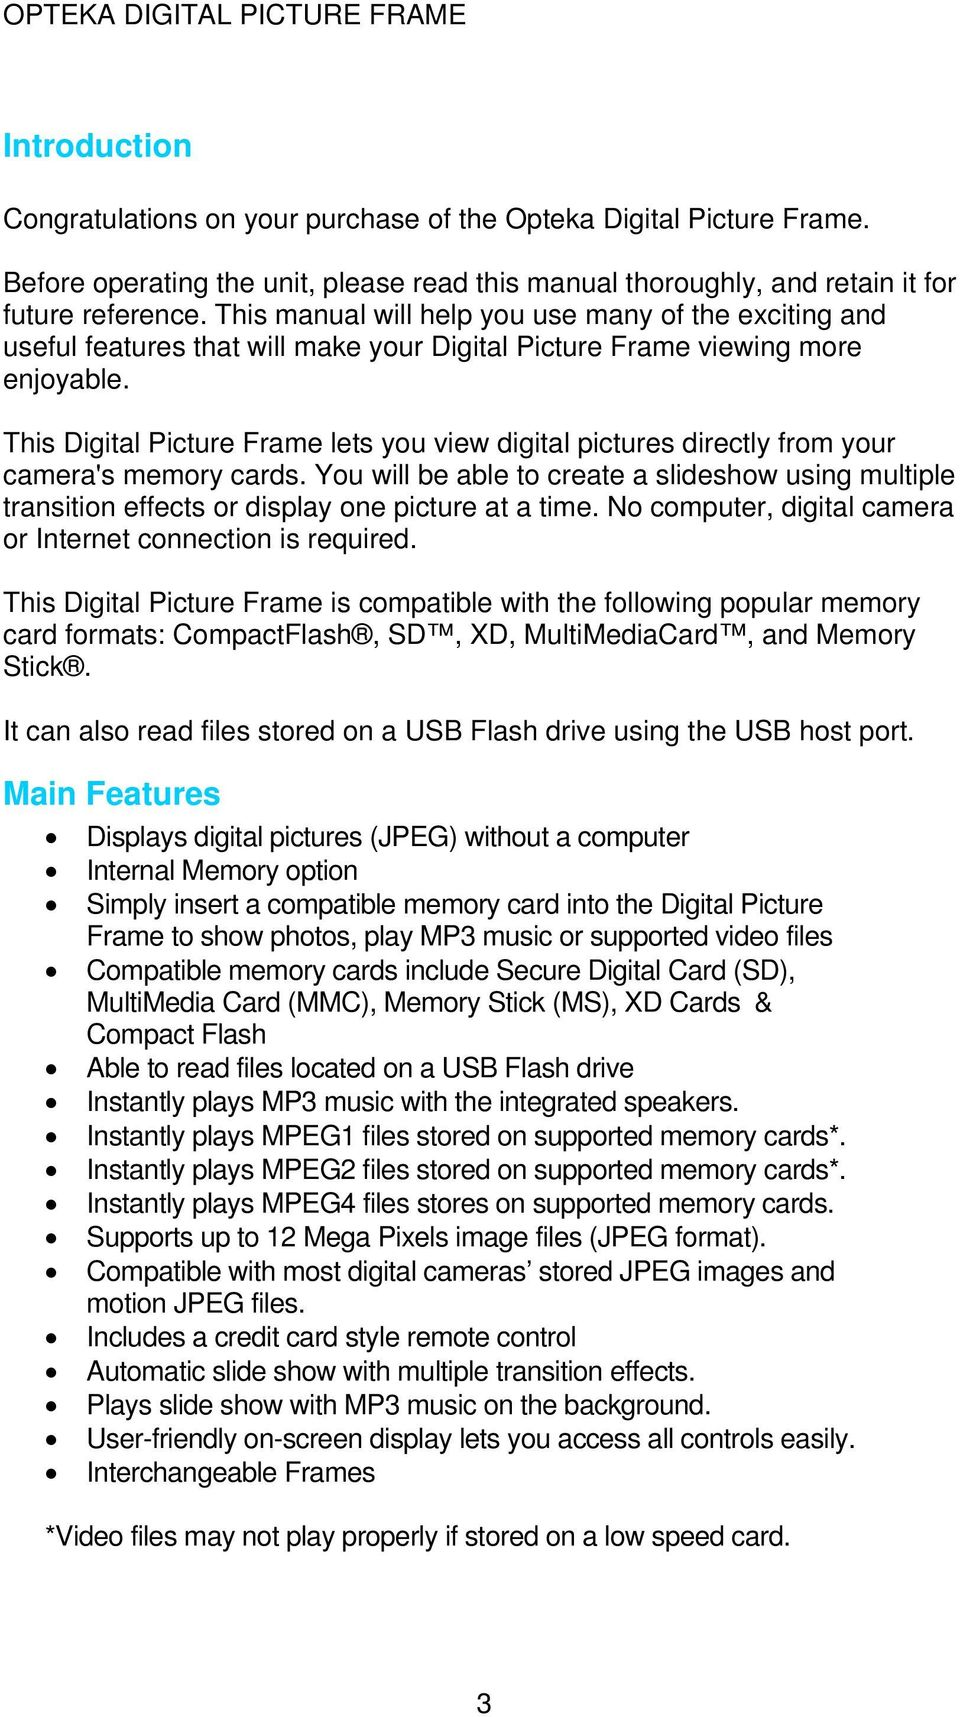 This Digital Picture Frame lets you view digital pictures directly from your camera's memory cards.